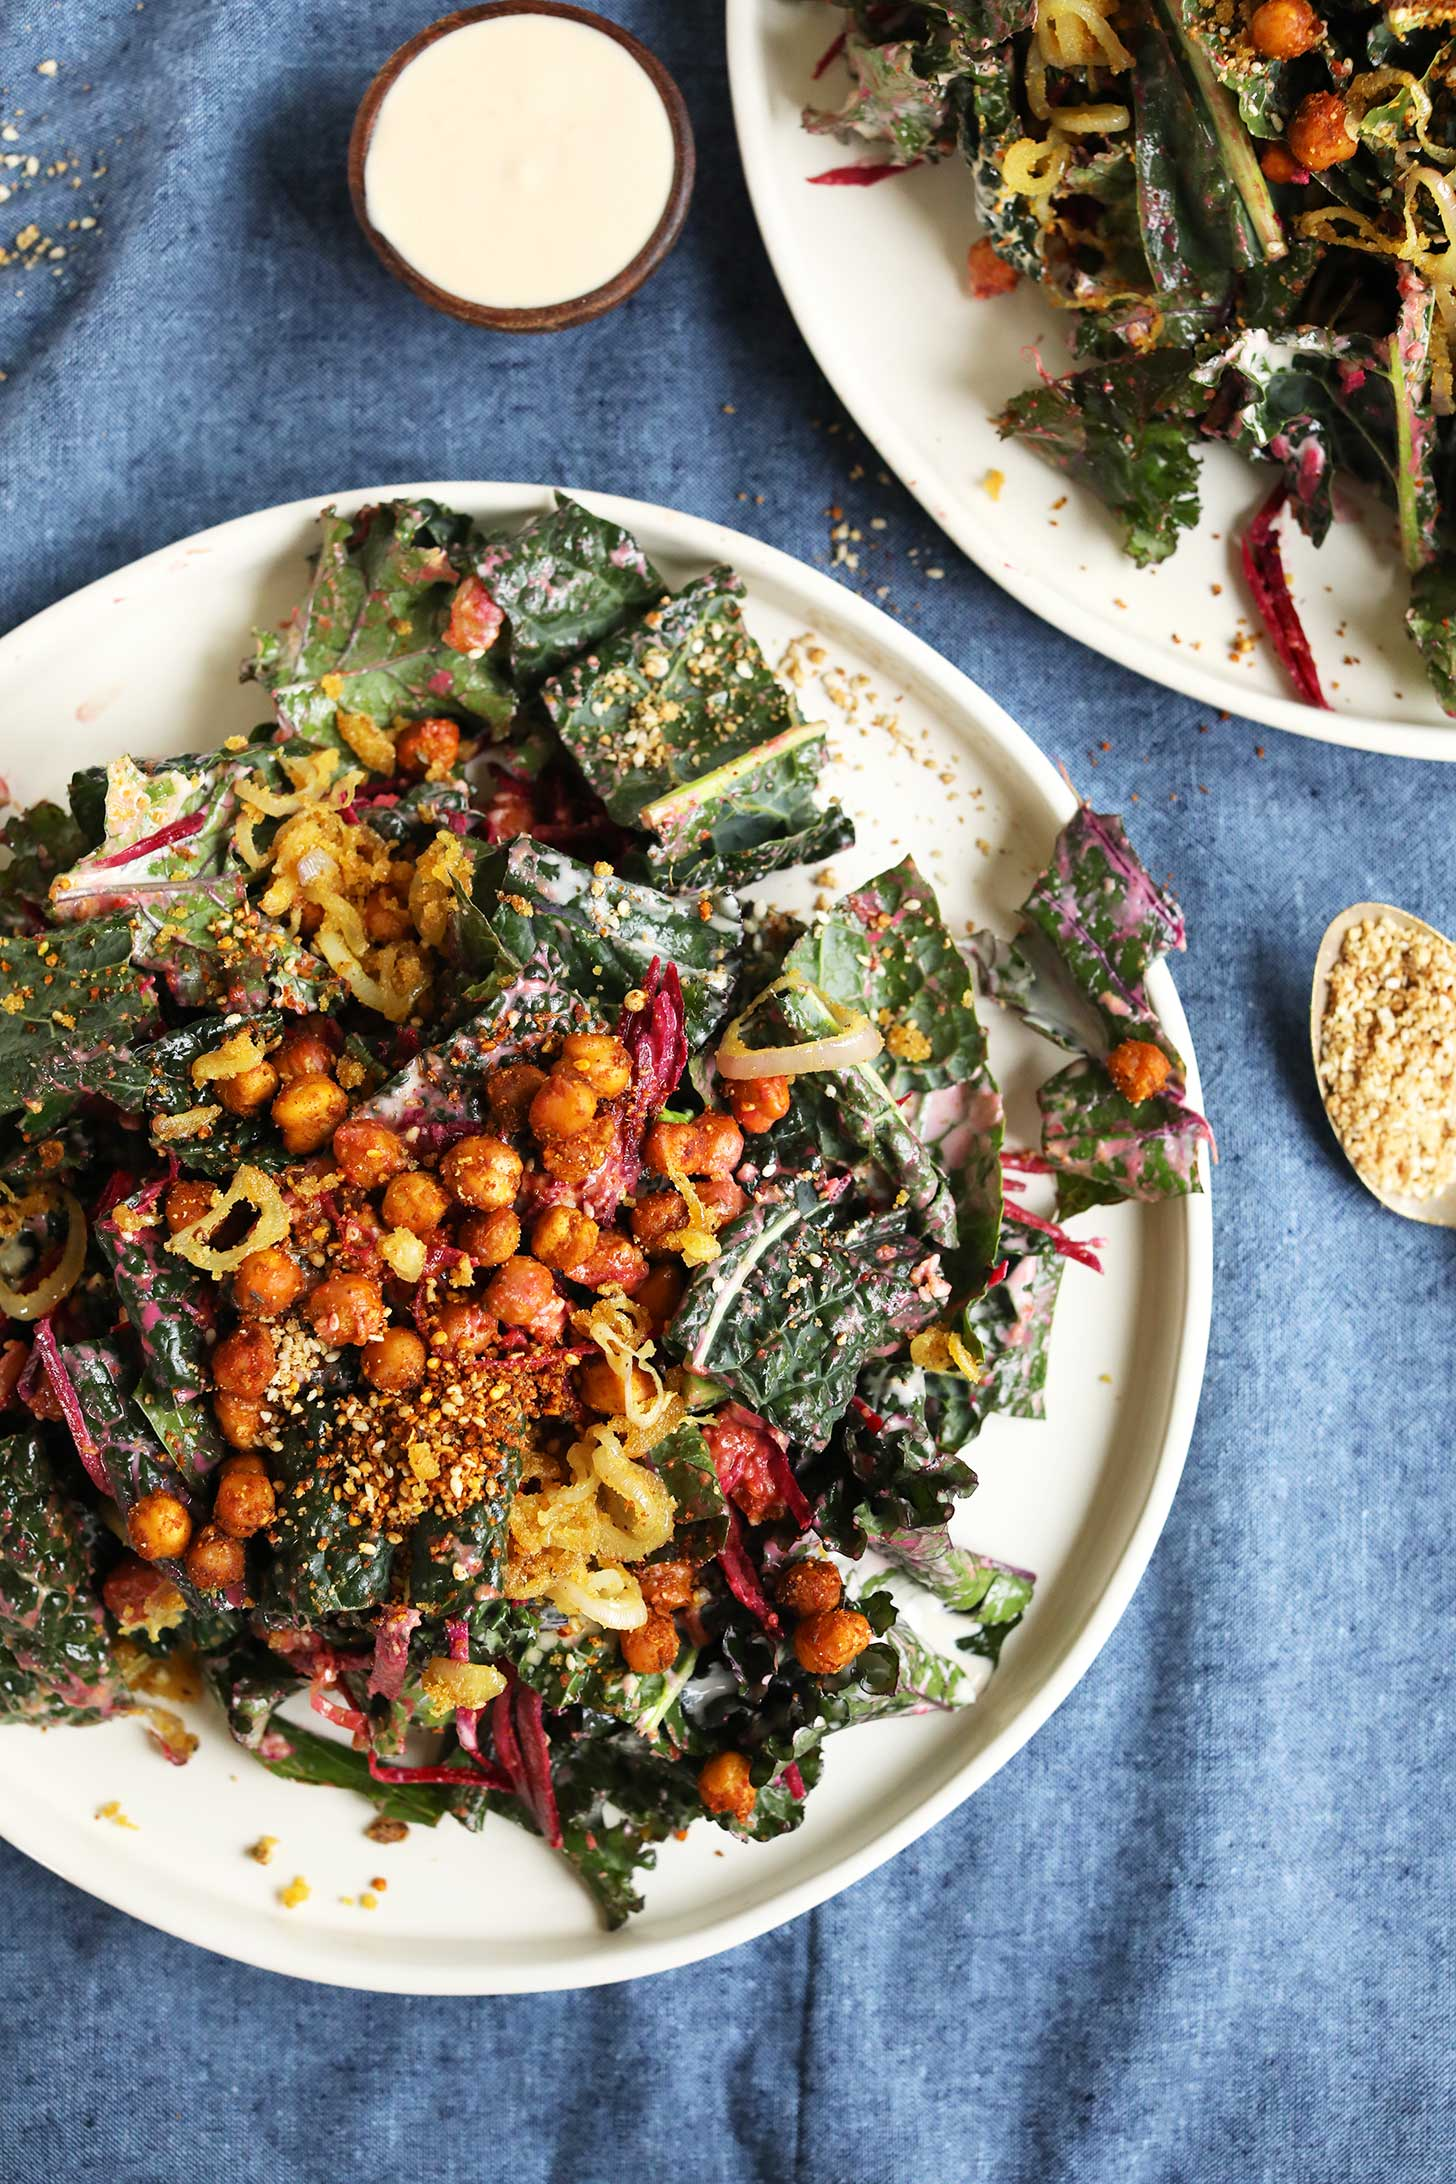 Big salad plate filled with Creamy Chickpea Kale Salad with Smoky Chickpeas ,Beets, and Dukkah